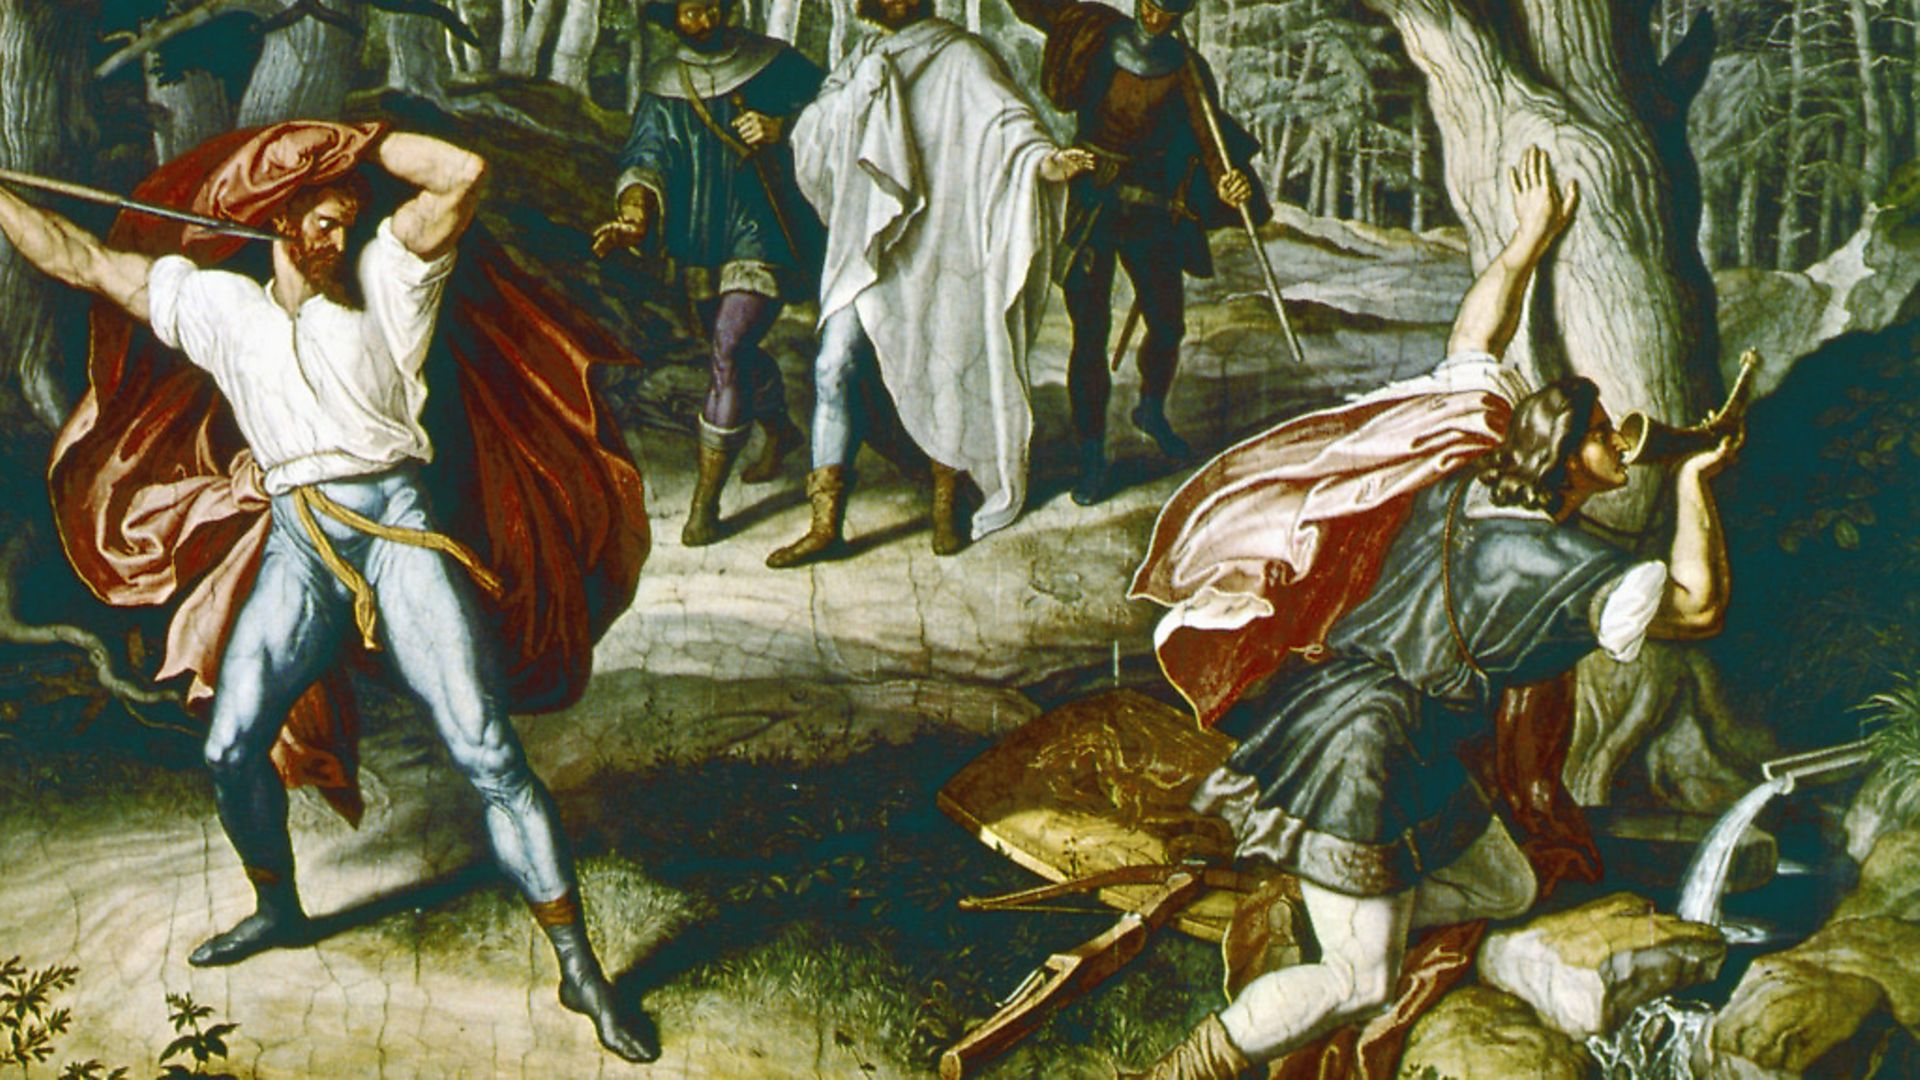 Julius Schnorr von Carolsfield's Siegfried's Death, 1847, tells the legend of the Nibelungen, the ancient tale that inspired Nicolas Jubber's Epic Continent. Picture: Getty Images - Credit: ullstein bild via Getty Images